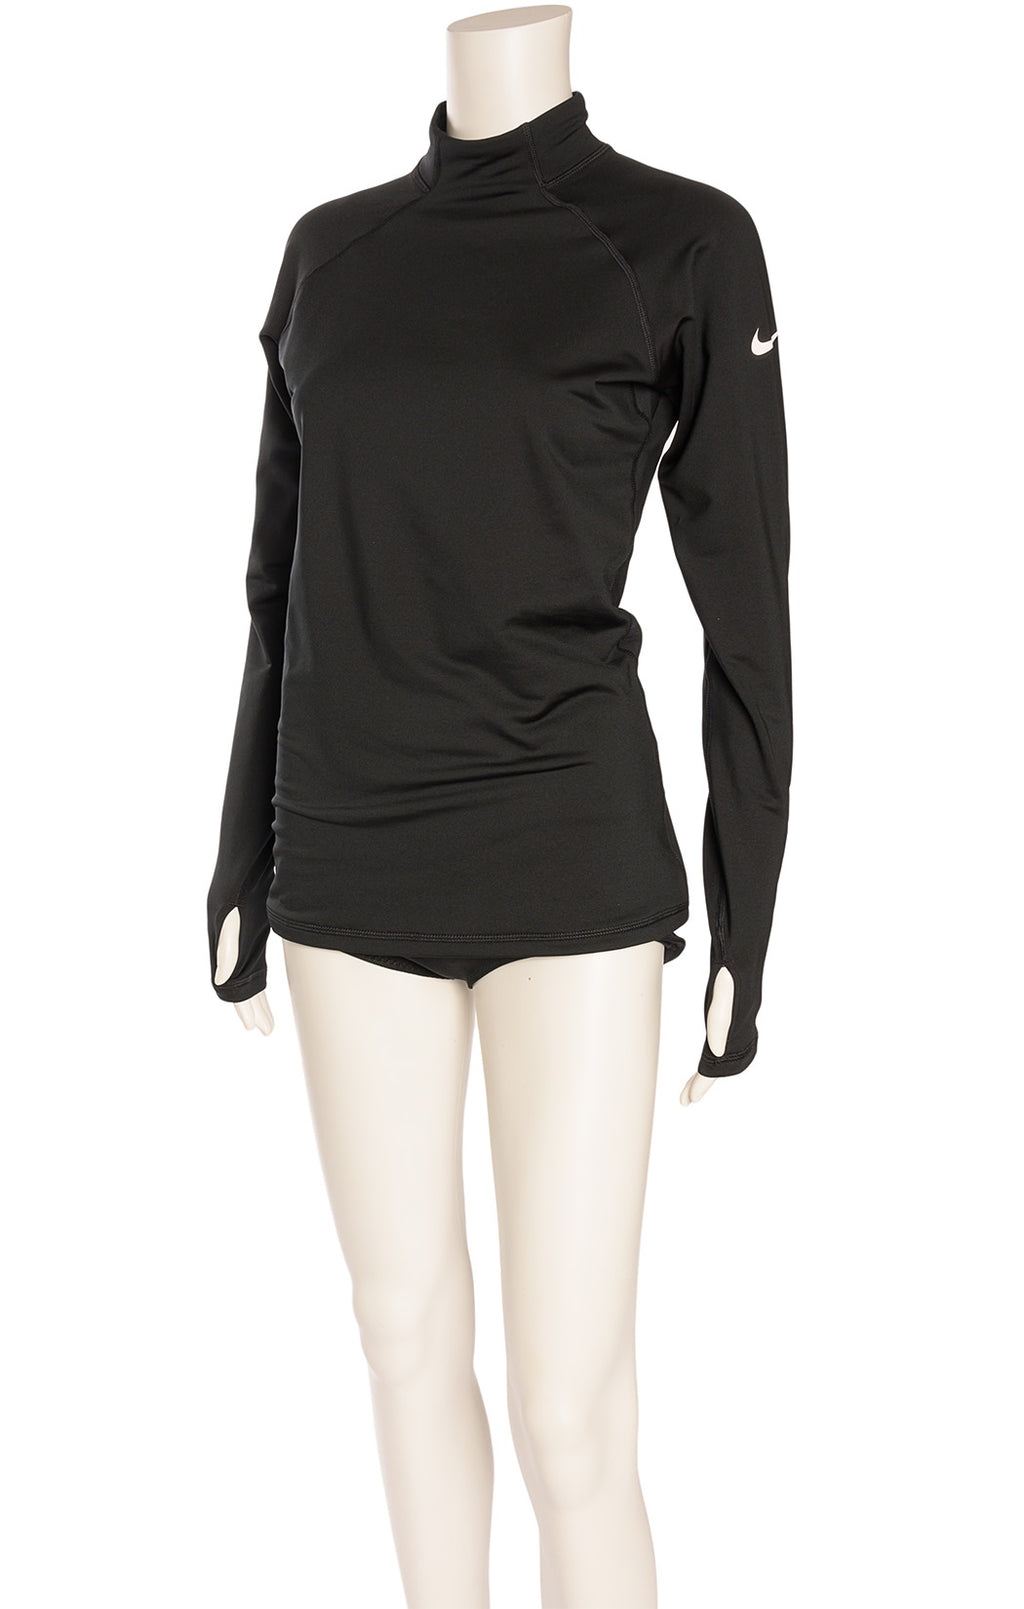 Front view of NIKE Top Size: Medium